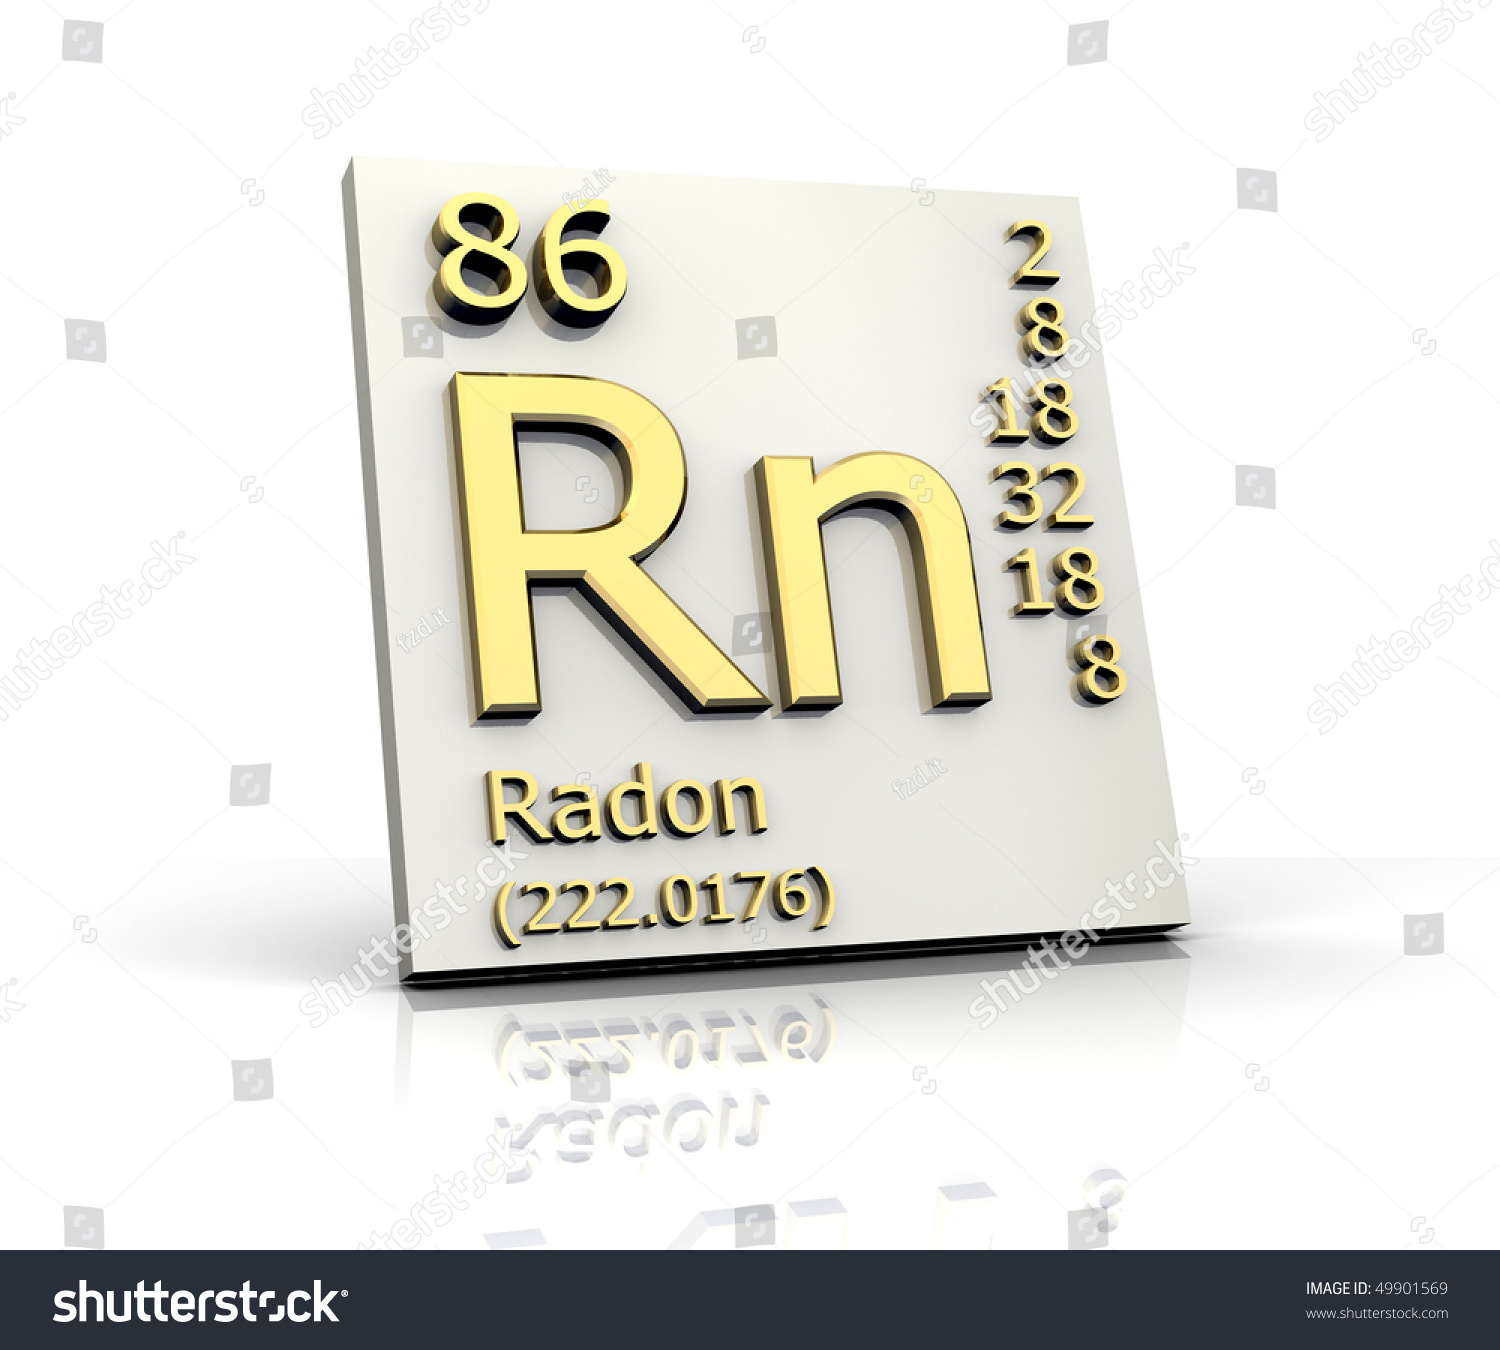 What family is radon in on the periodic table brokeasshome radon form periodic table elements stock ilration 49901569 gamestrikefo Image collections